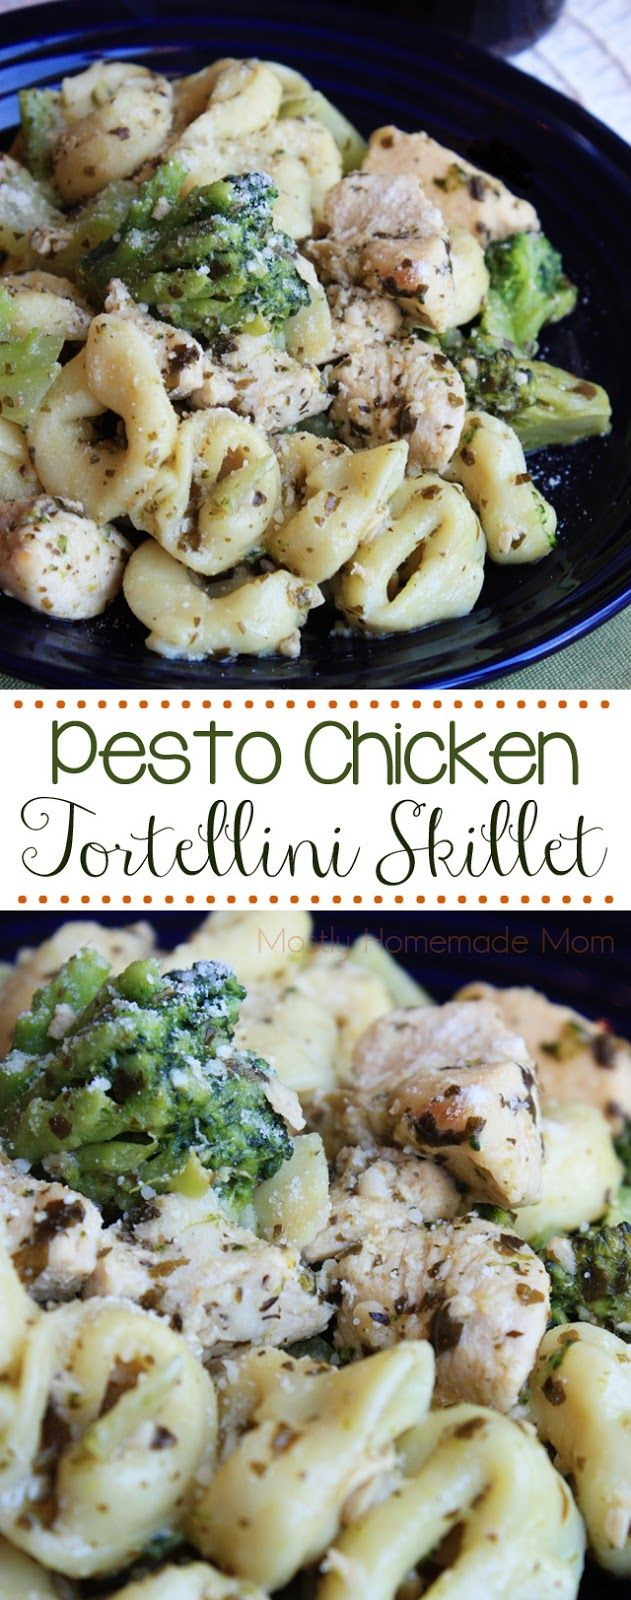 Chicken, cheese tortellini, and broccoli sauteed in a lemony pesto sauce - the perfect weeknight dinner!               I'm officially here ...